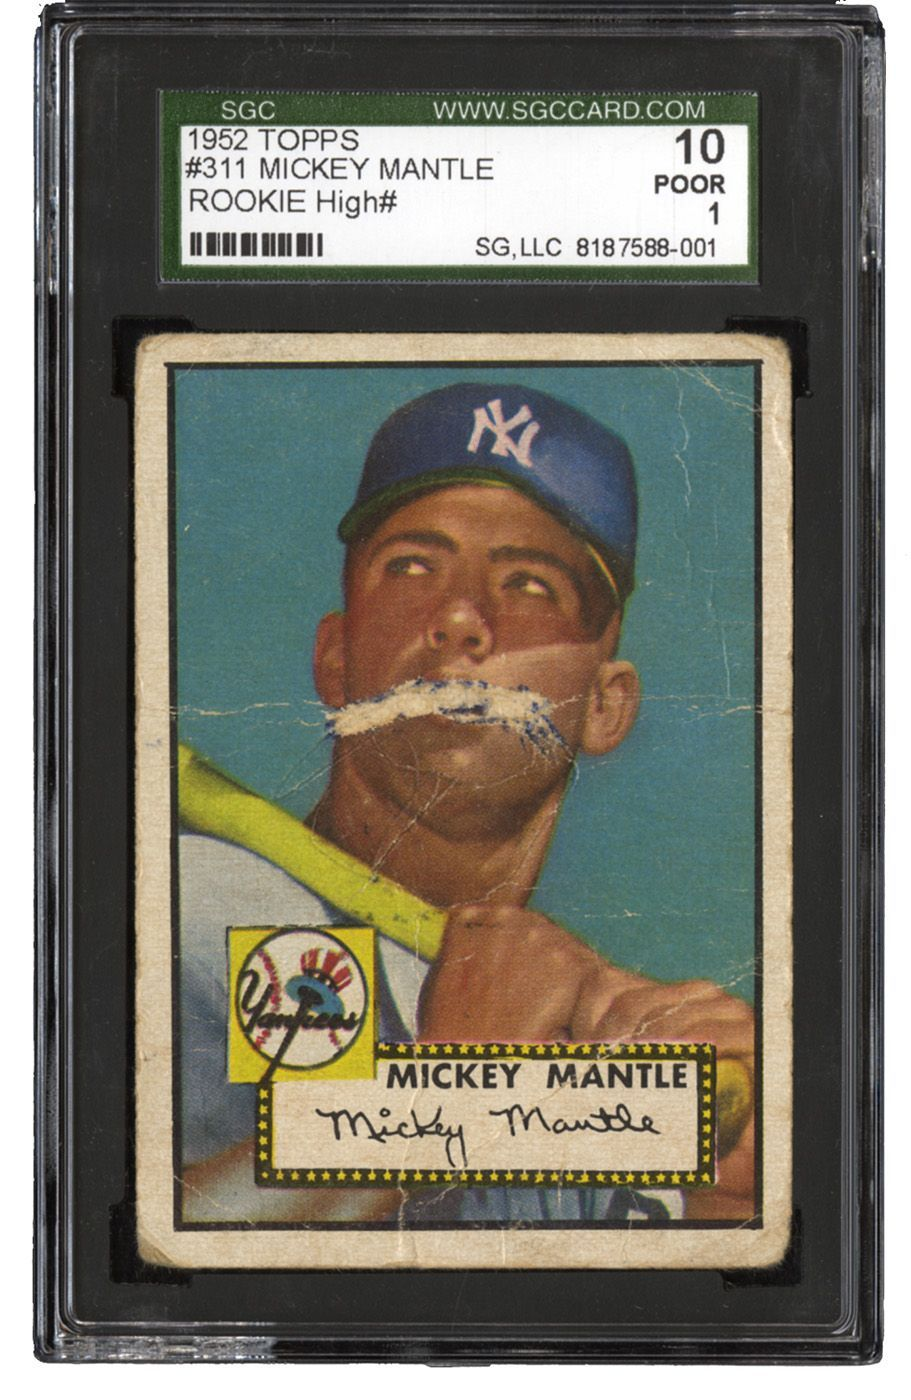 1952 topps 311 mickey mantle rookie card poor baseball